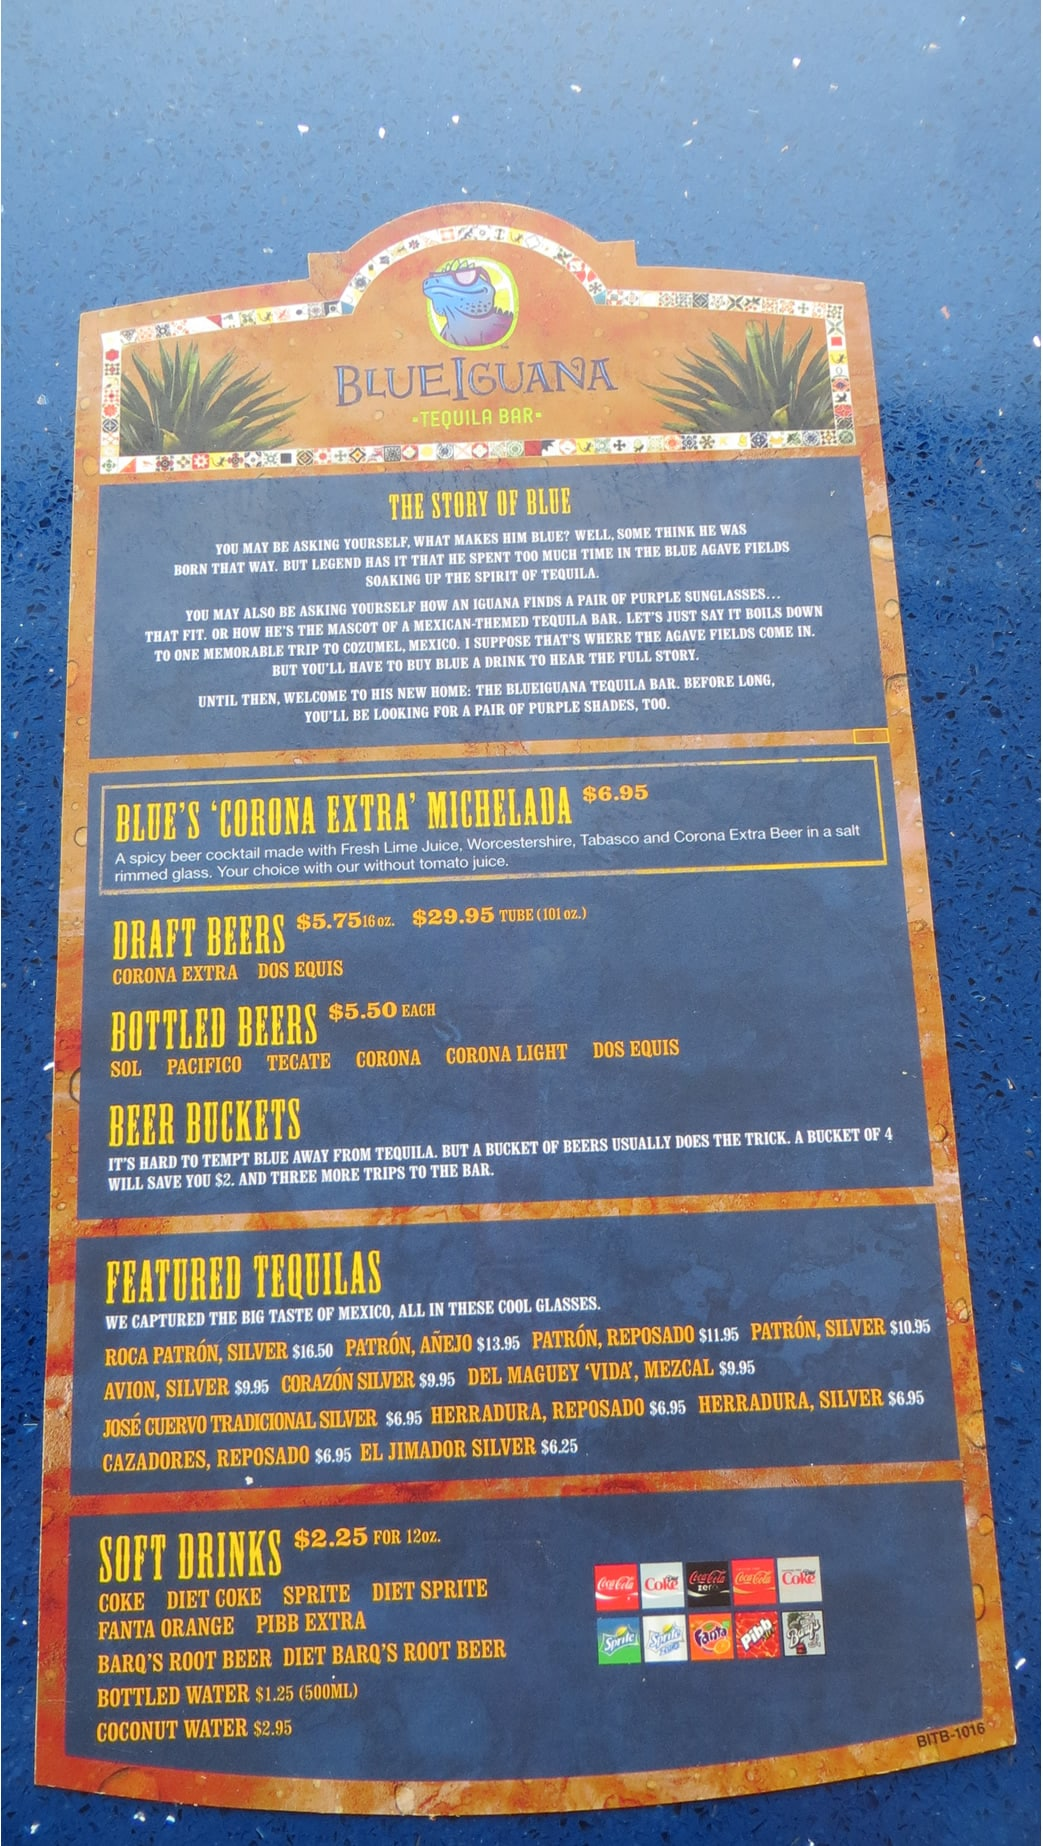 Blueiguana Tequila Bar Full Menu With Prices Cruzely Com